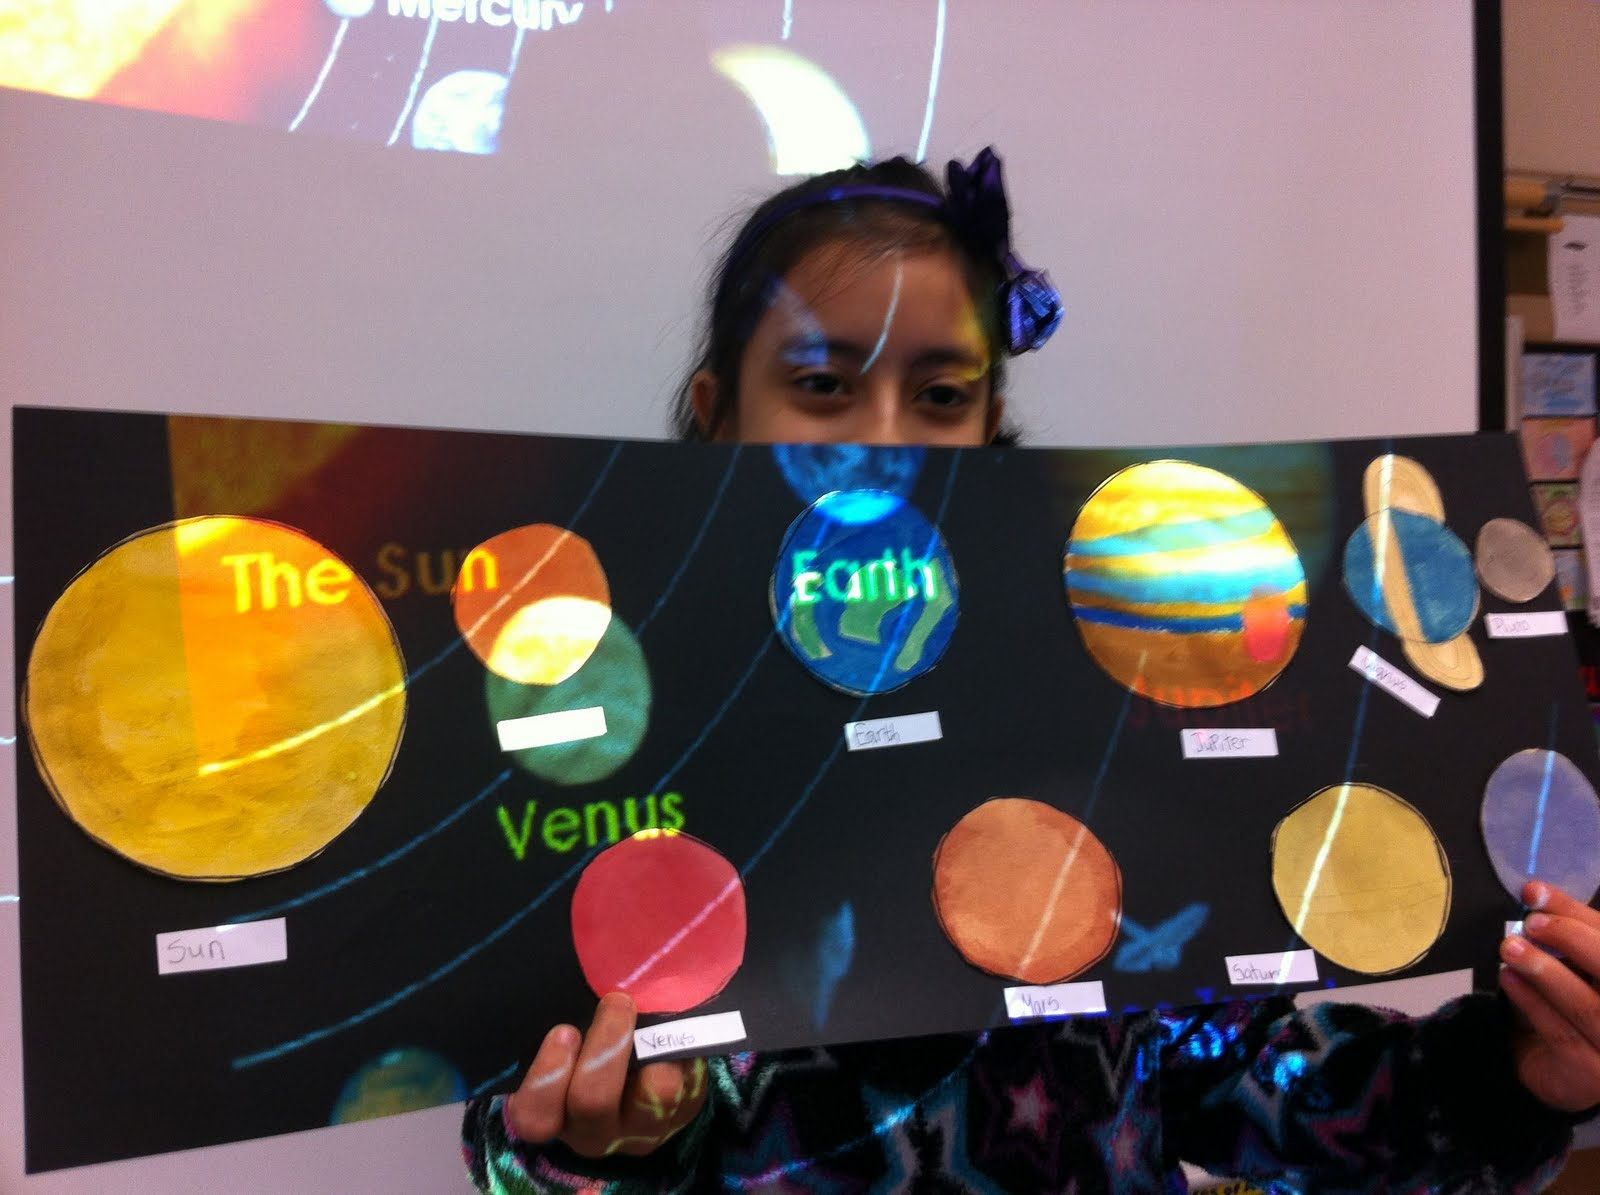 solar system projects for 3rd grade - photo #24